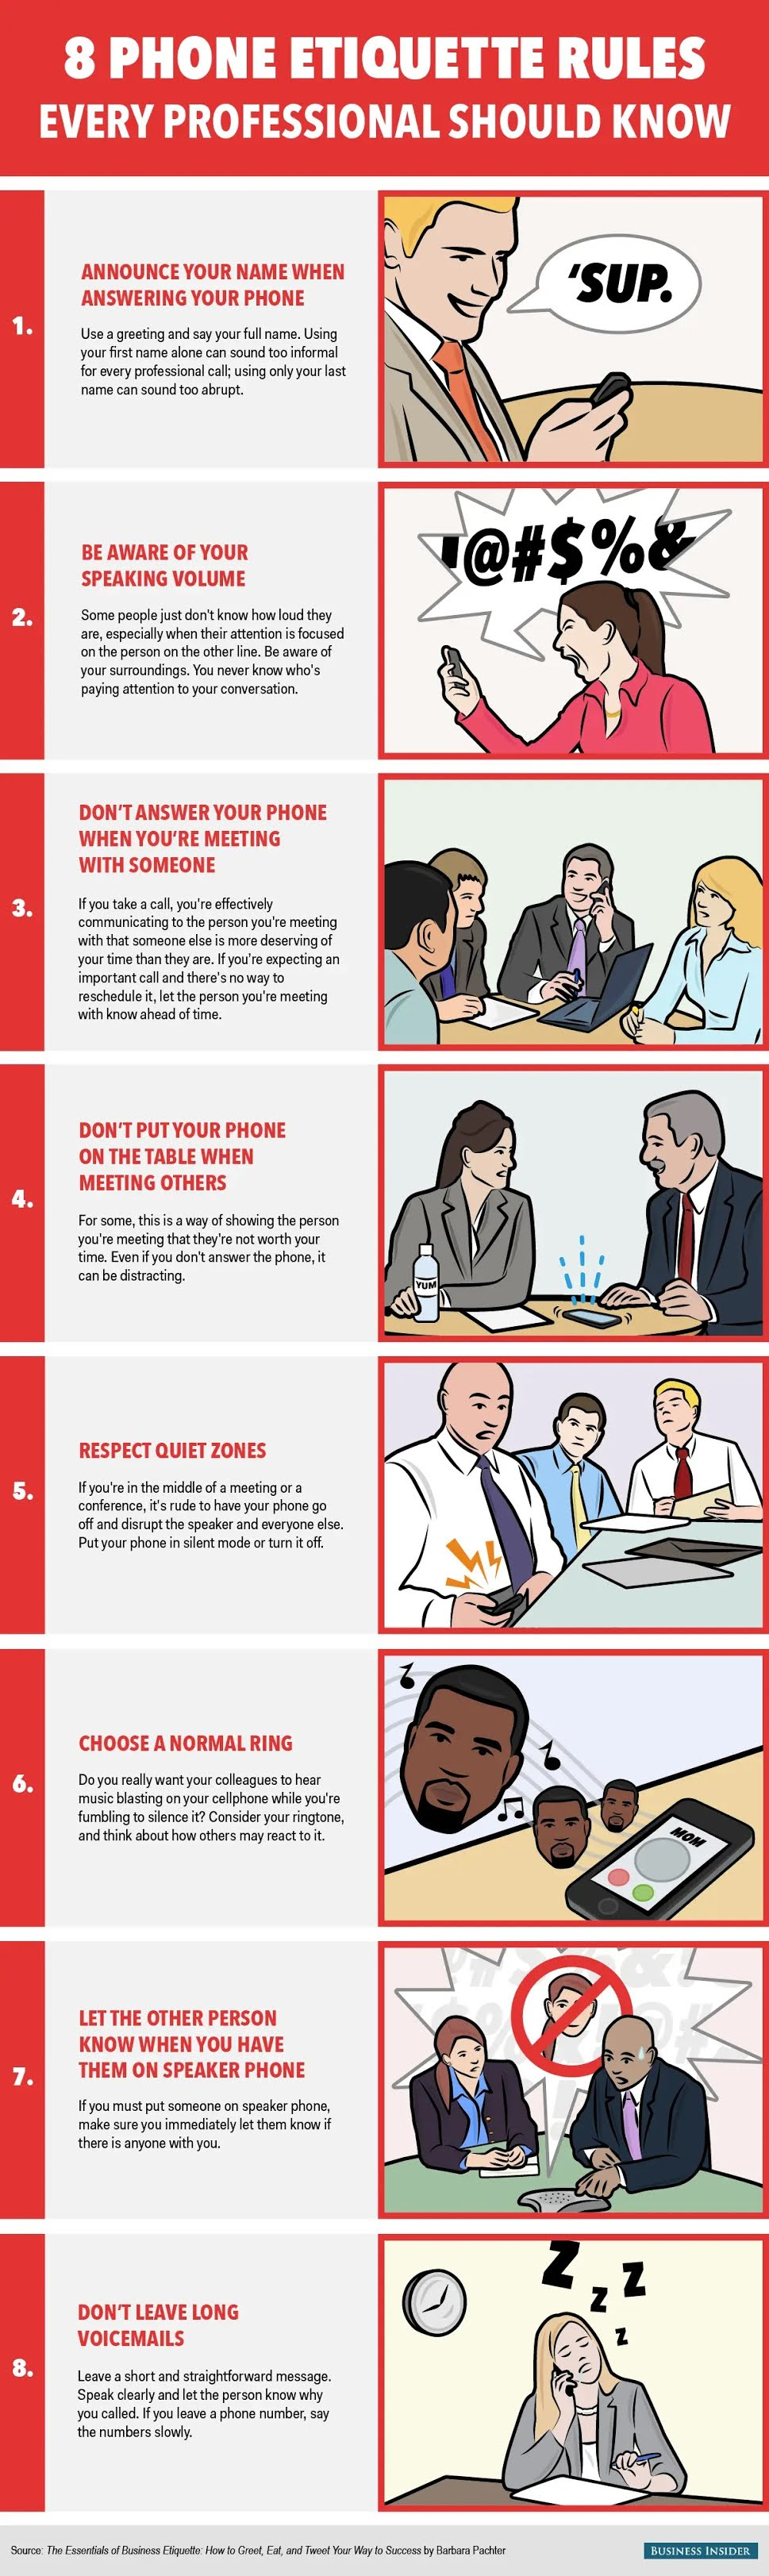 8 phone etiquette rules every professional should know #infographic #Phone etiquette #Cell Phone #infographics #Phone etiquette rules